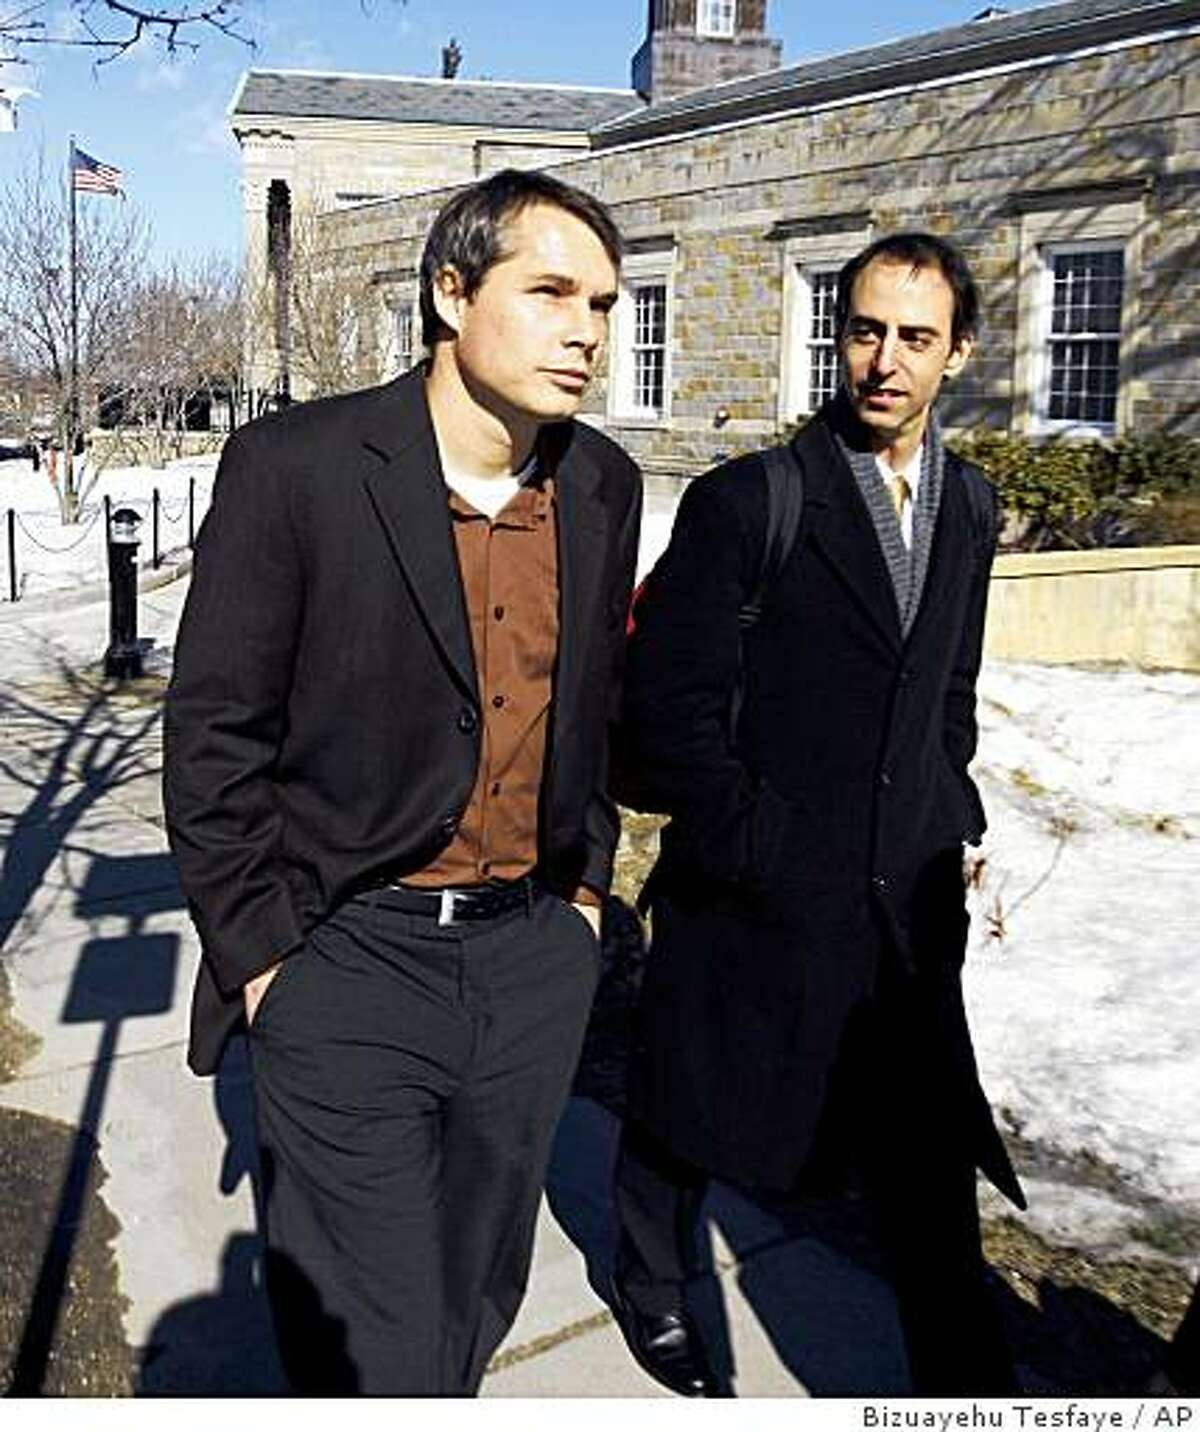 Shepard Fairey, left, and his attorney Jeffrey Wiesner, leave Brighton section of Boston District Court, Monday, Feb. 9, 2009. Fairey , 38, the controversial street artist who gained fame with his red, white and blue posters of President Barack Obama was arrested and charged in Boston with damage to property for having painted two Boston area locations with graffiti. (AP Photo/Bizuayehu Tesfaye)